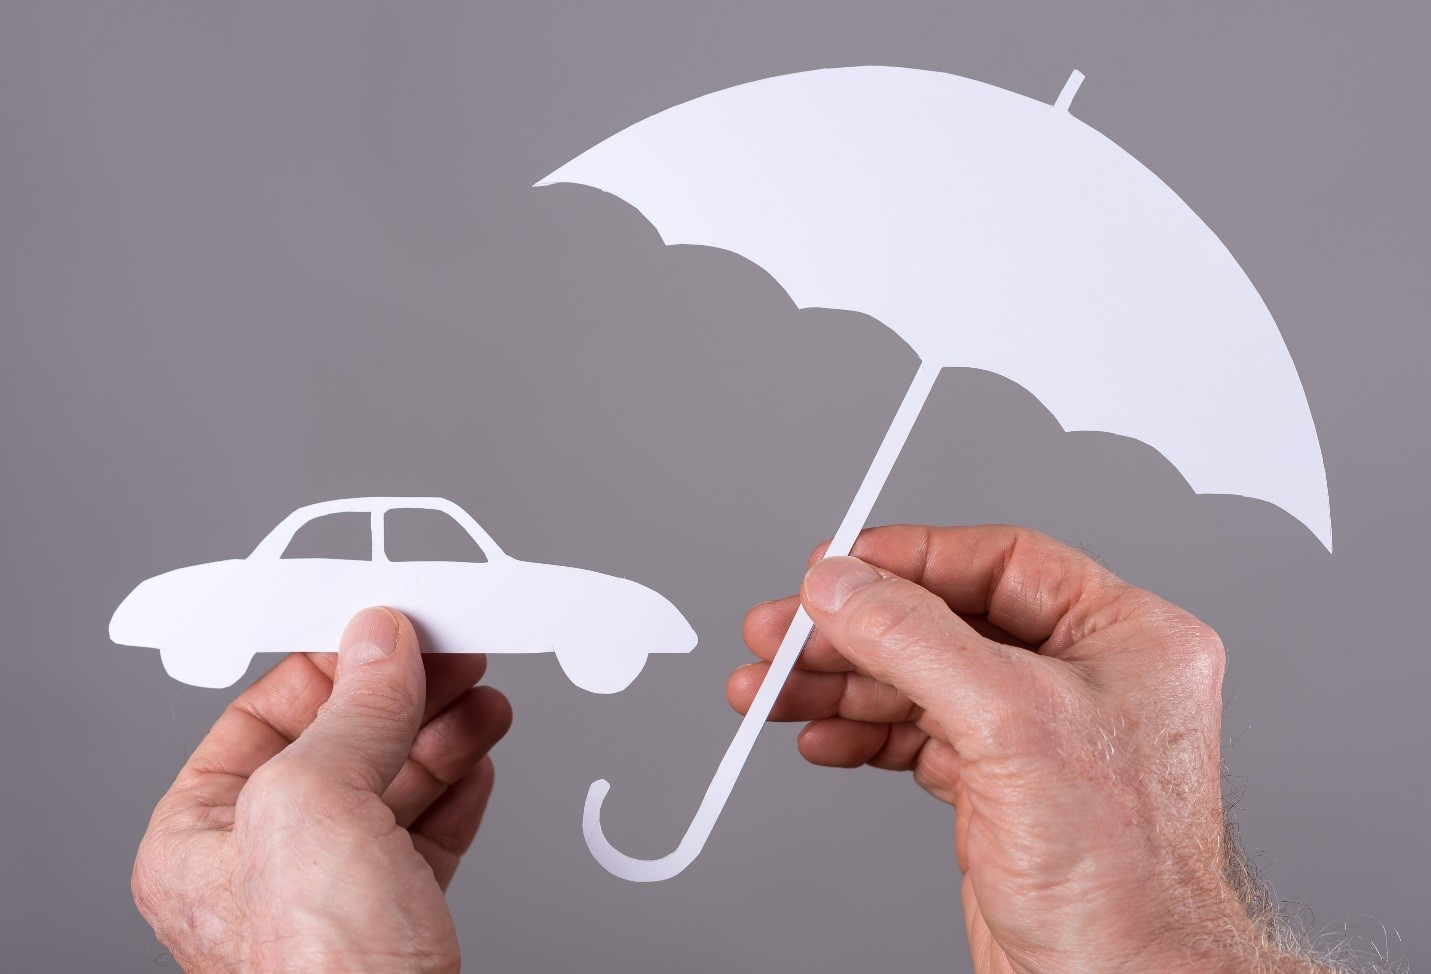 Does Time of Year Matter When Buying Car Insurance? Months and Marriage Can Make a Difference on avanteinsurance.com